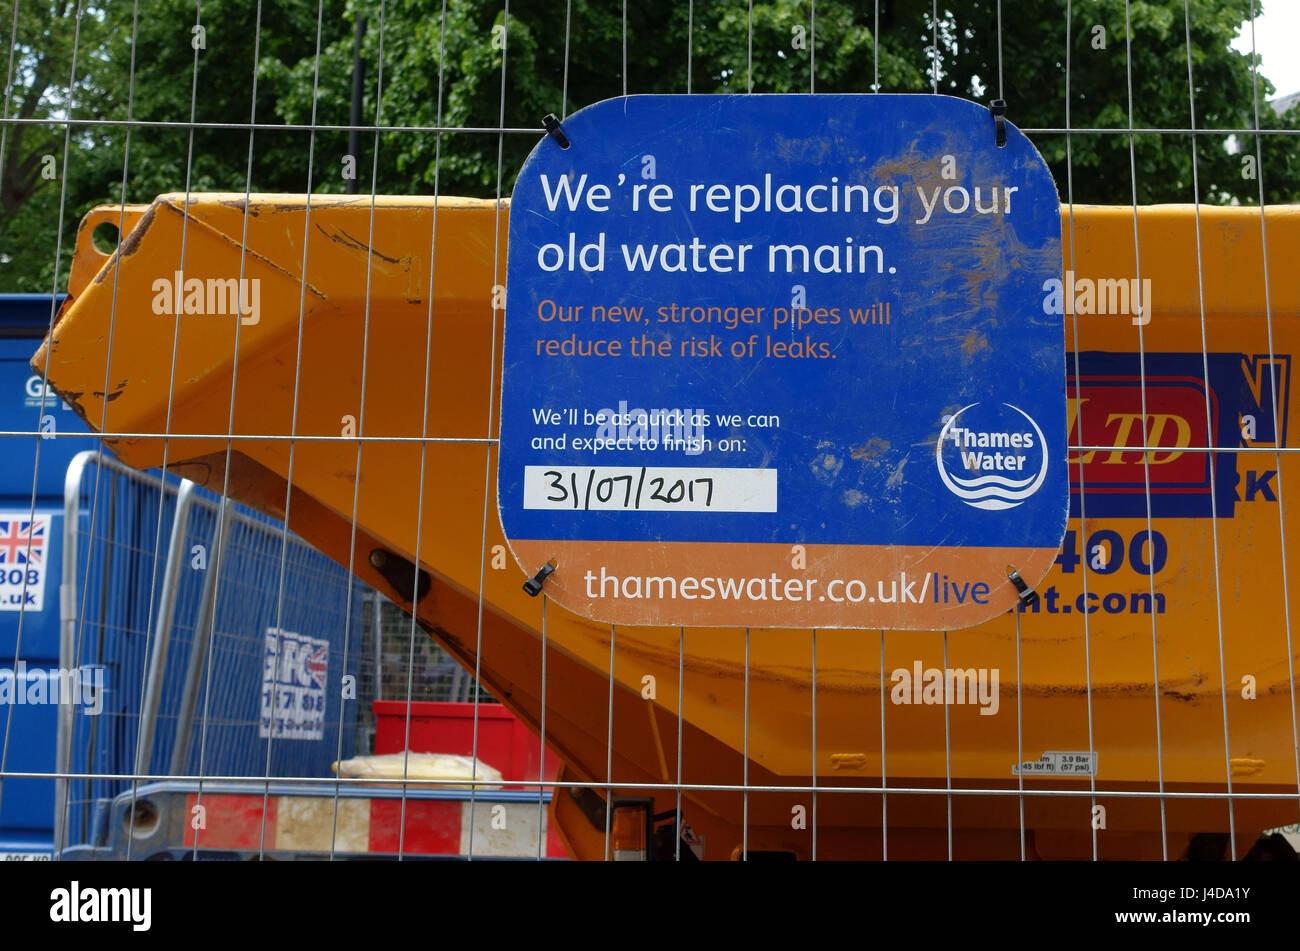 Thames Water works to improve water mains in Islington, North London - Stock Image